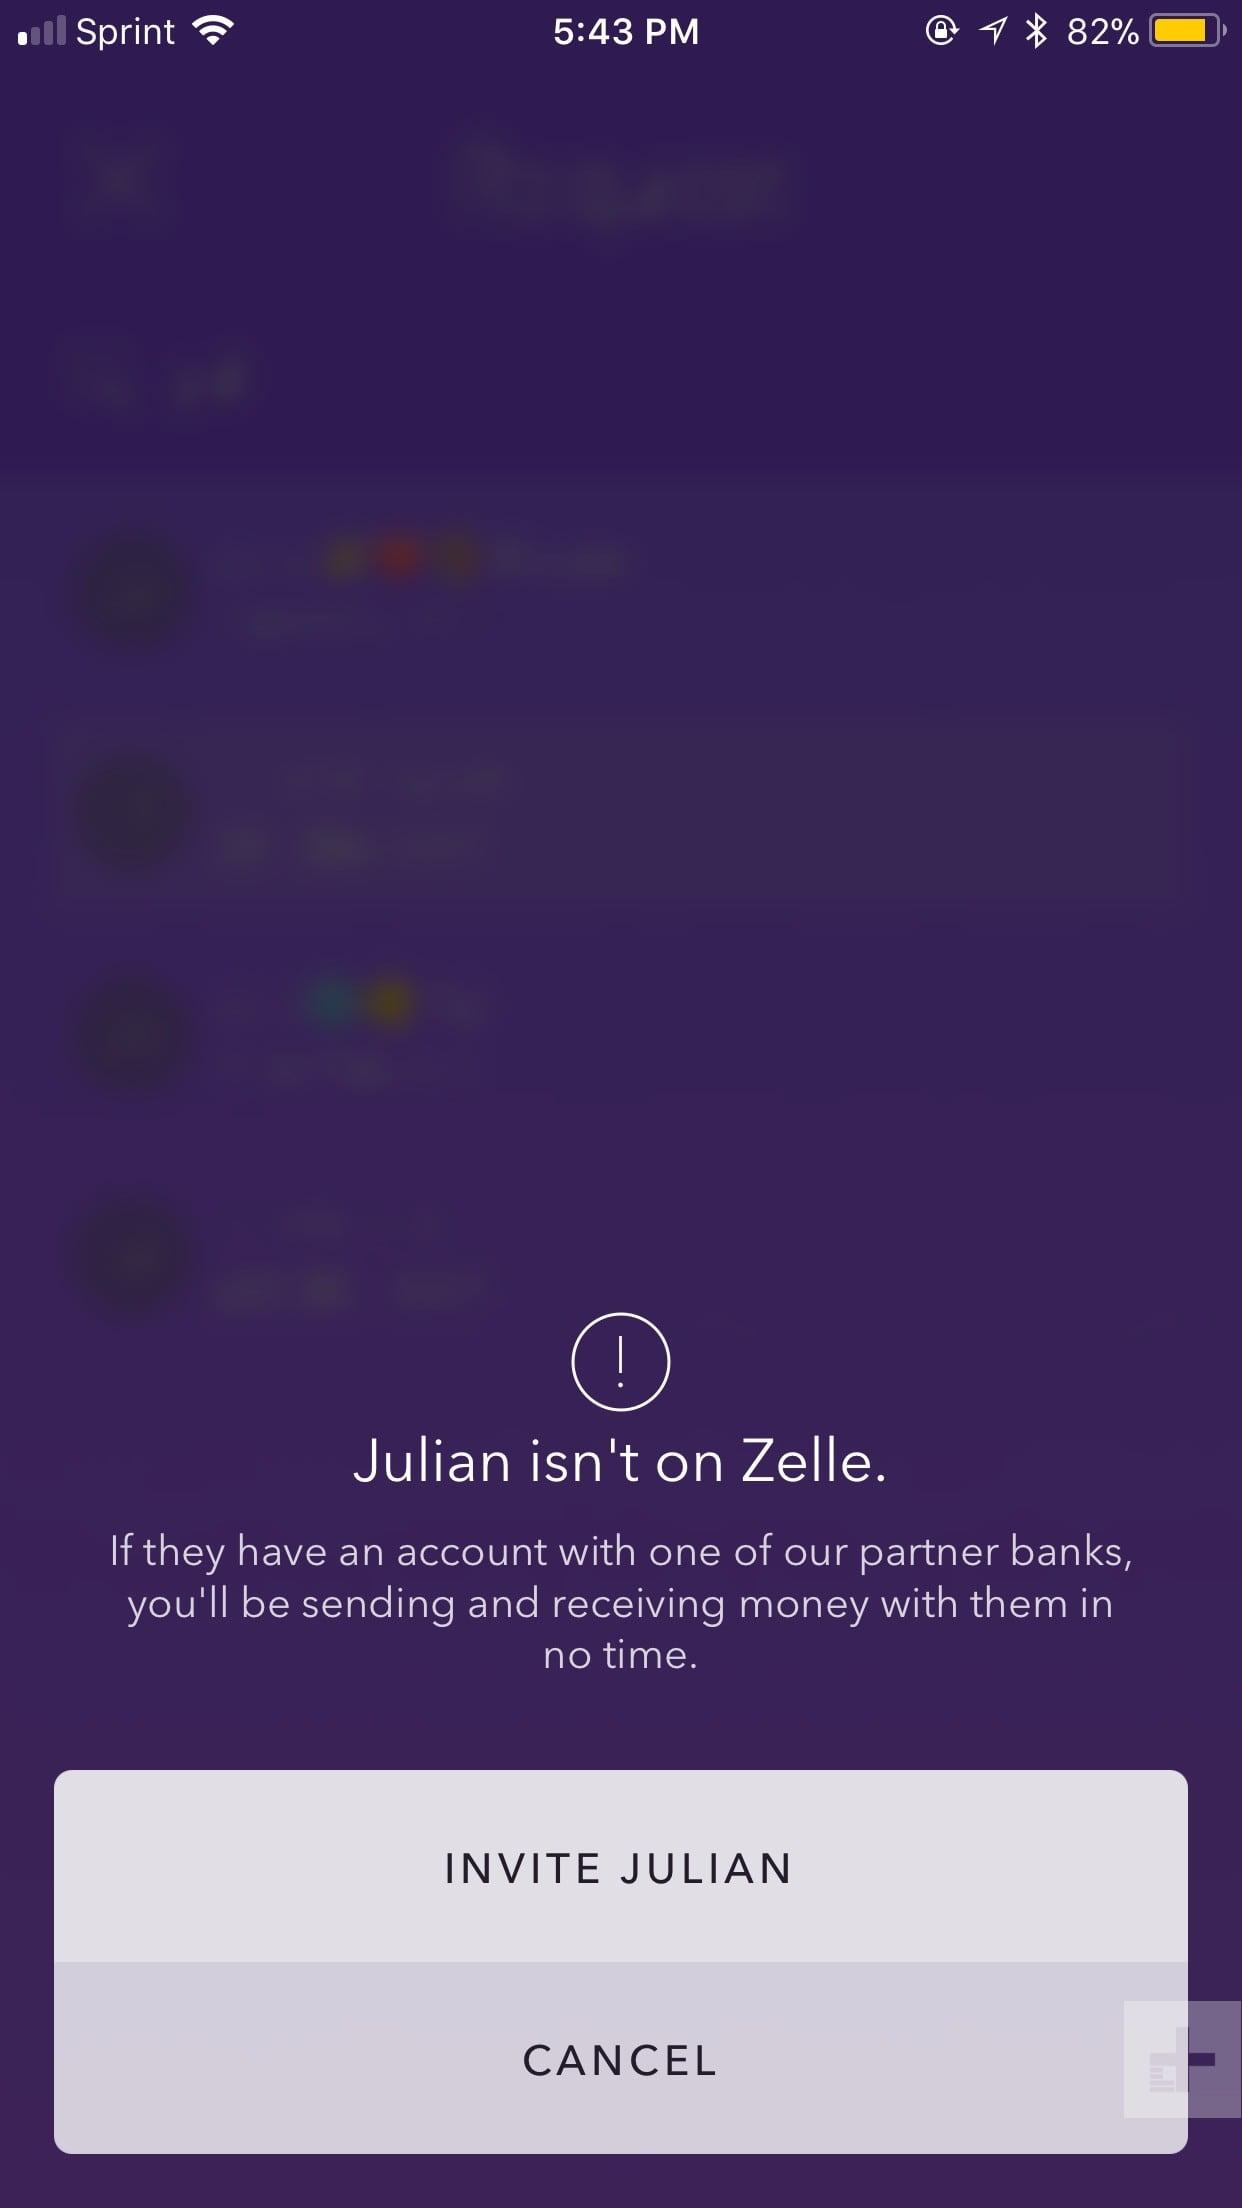 Zelle Launches Standalone Payment App, Sends Money Instantly